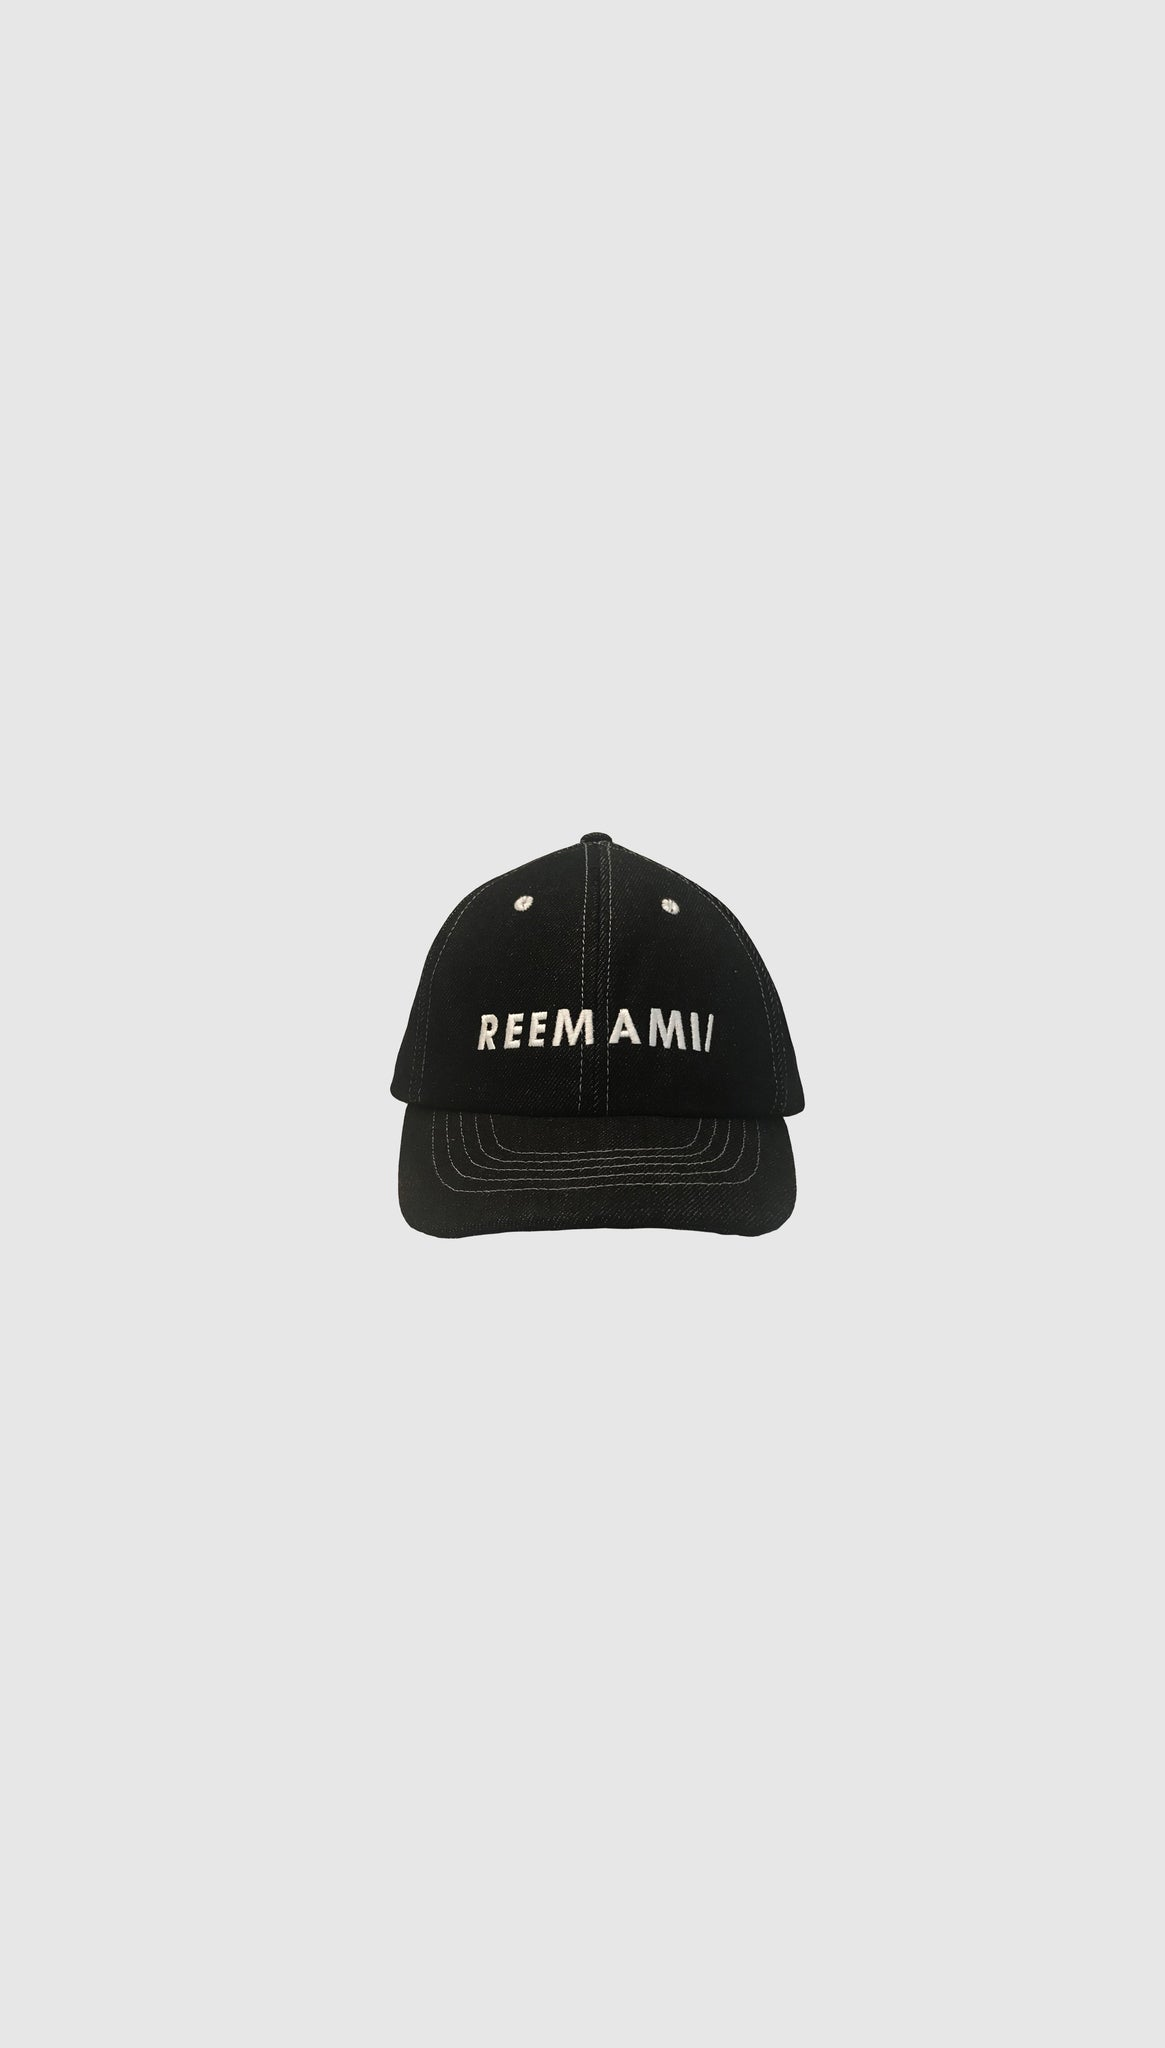 Reemami denim cap